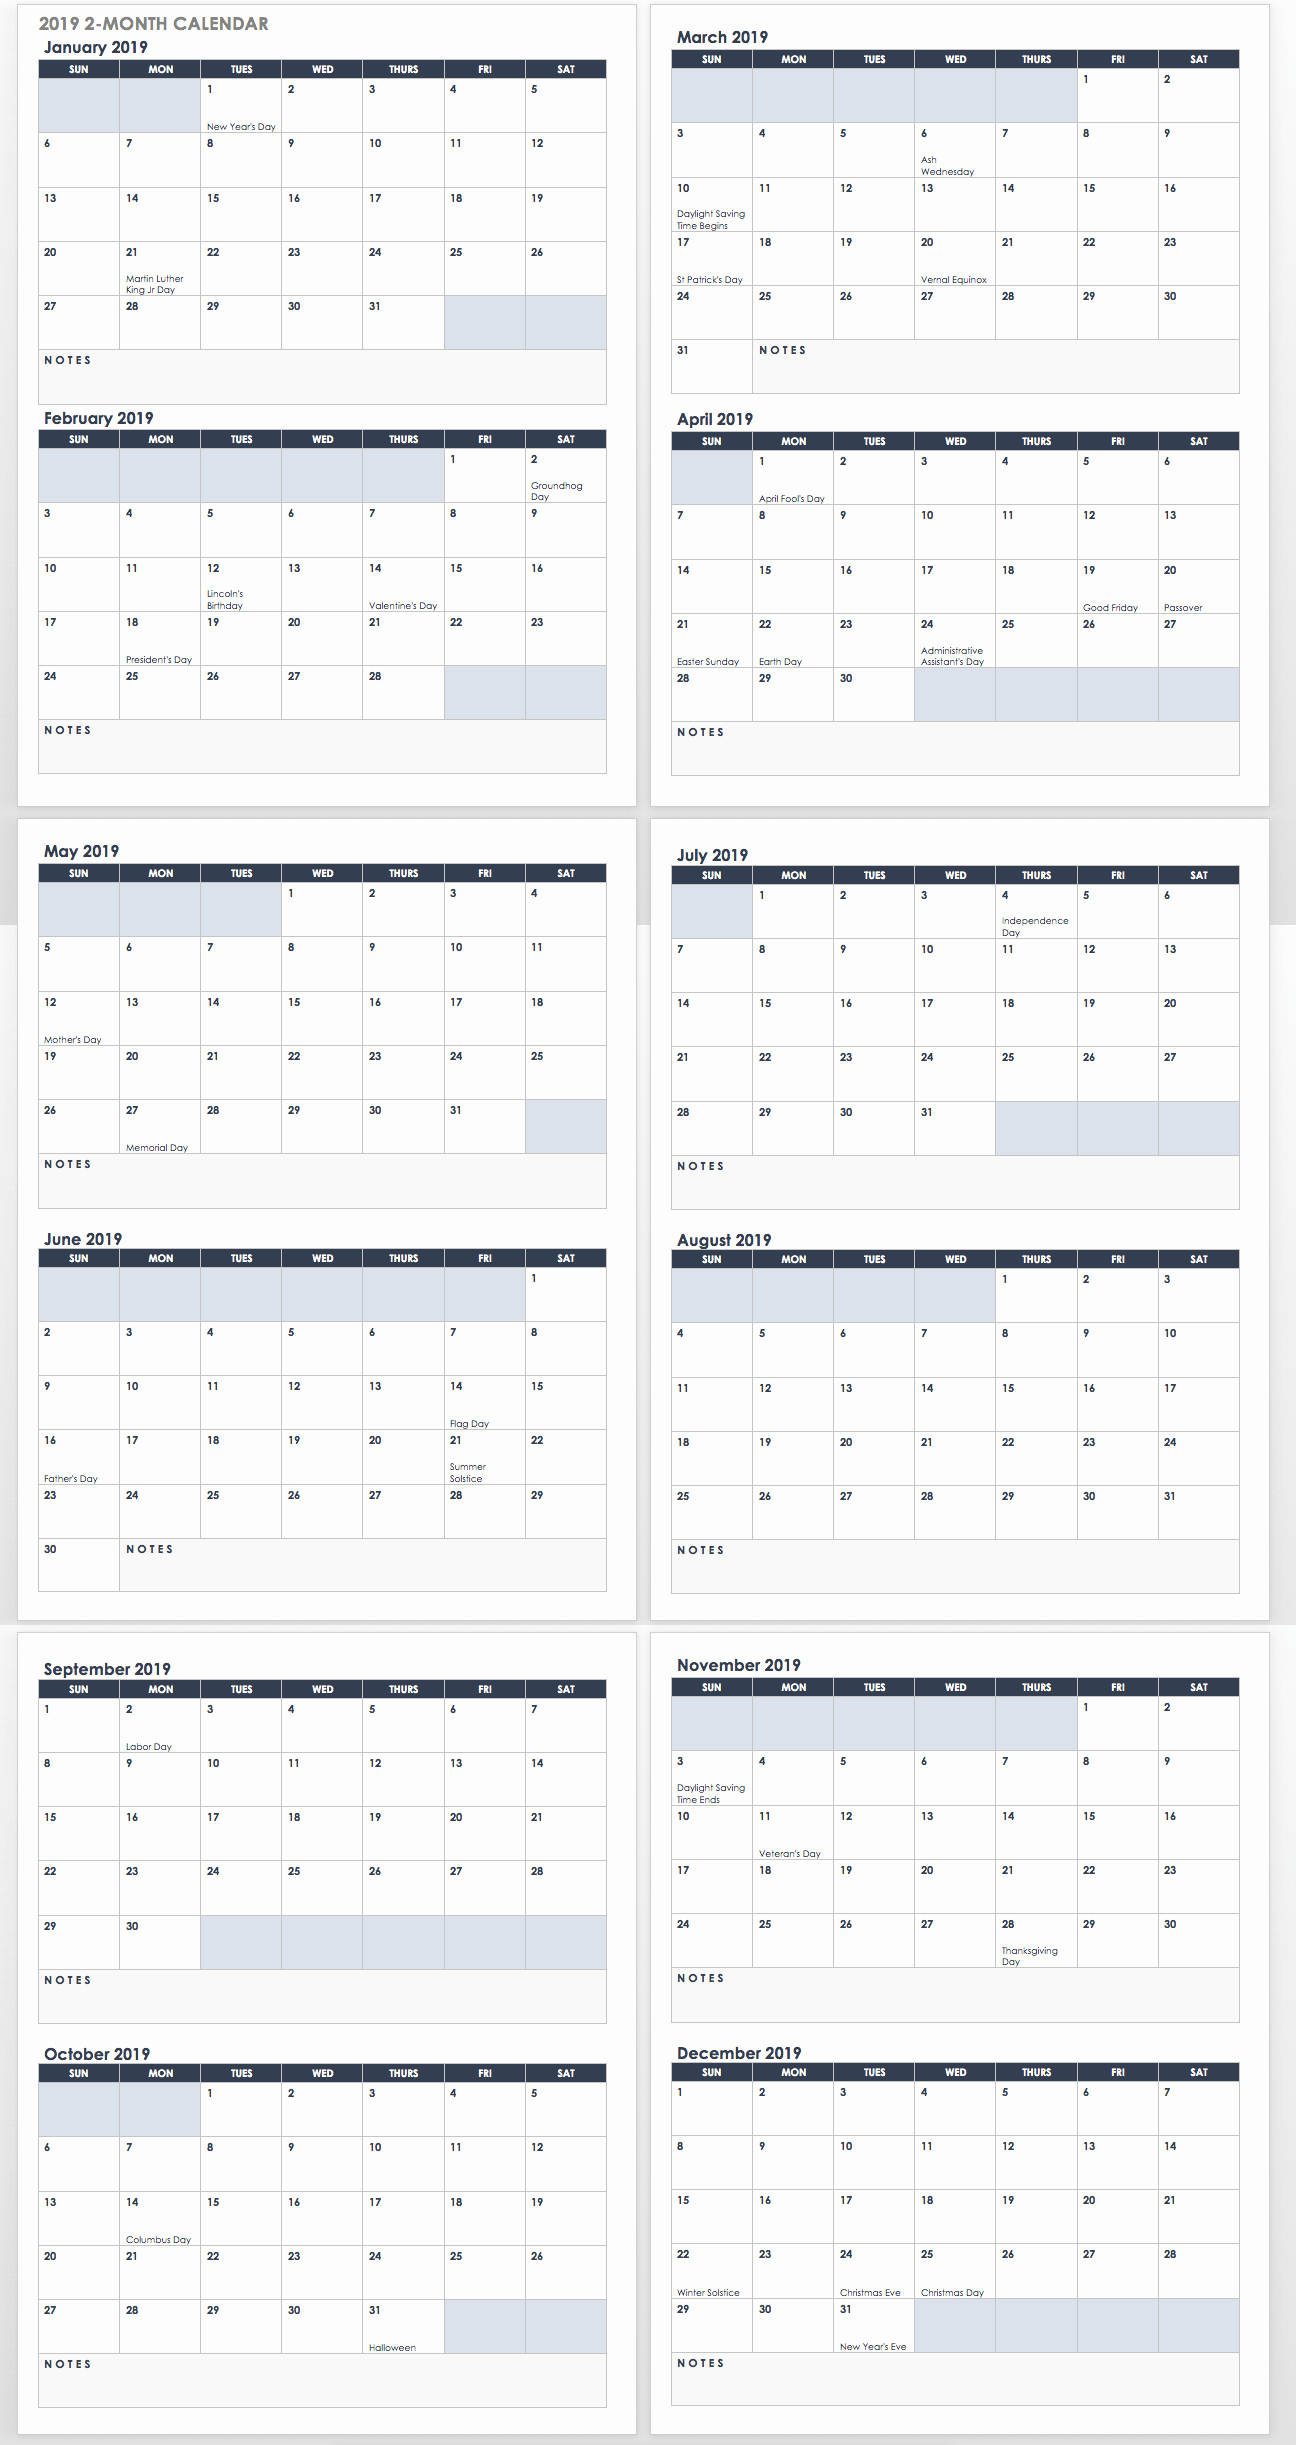 Month by Month Calendar Template Luxury 15 Free Monthly Calendar Templates